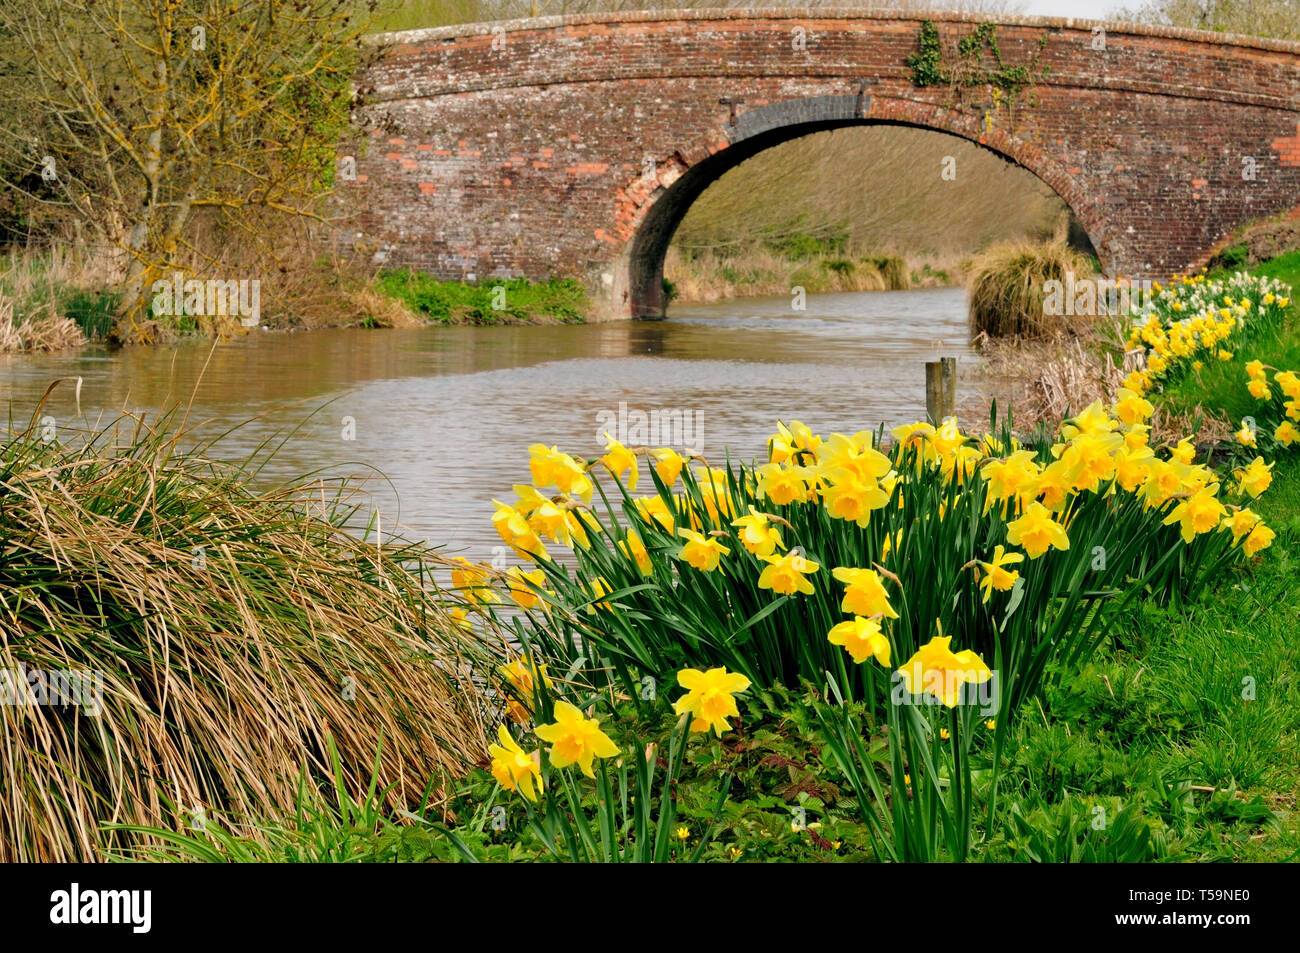 Daffodils beside the Kennet and Avon canal. - Stock Image